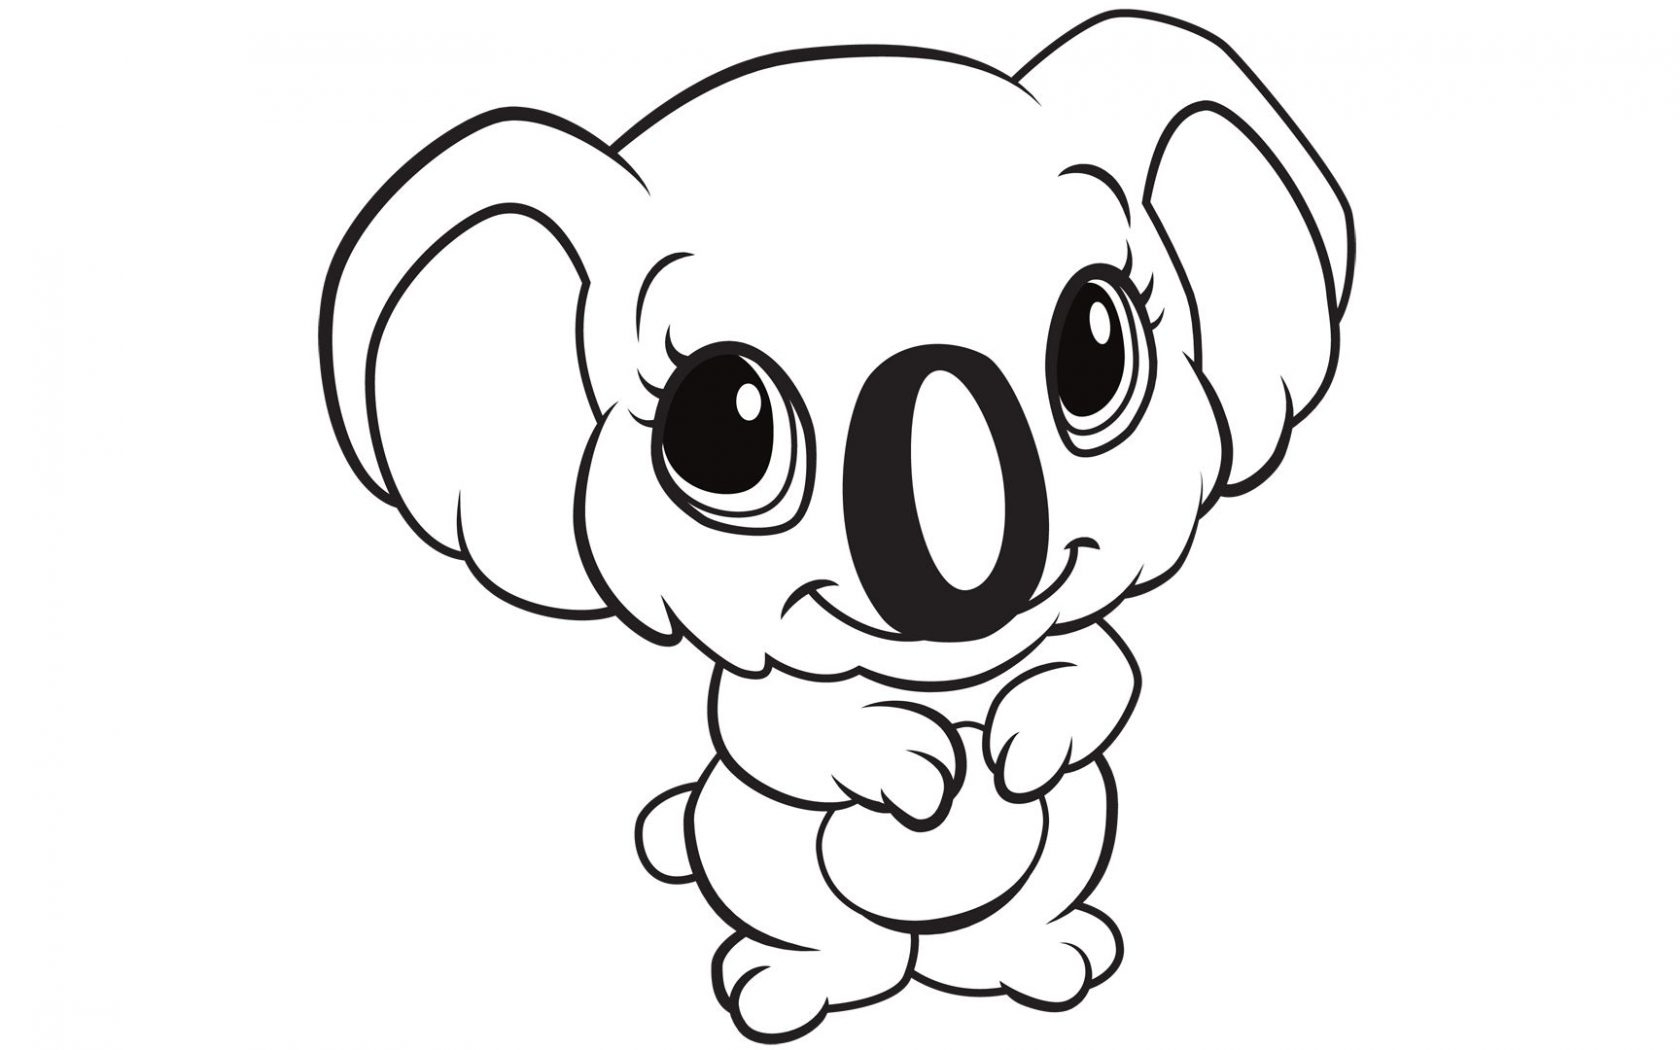 Ausmalbilder Zootiere: Free Baby Animal Coloring Pages Download